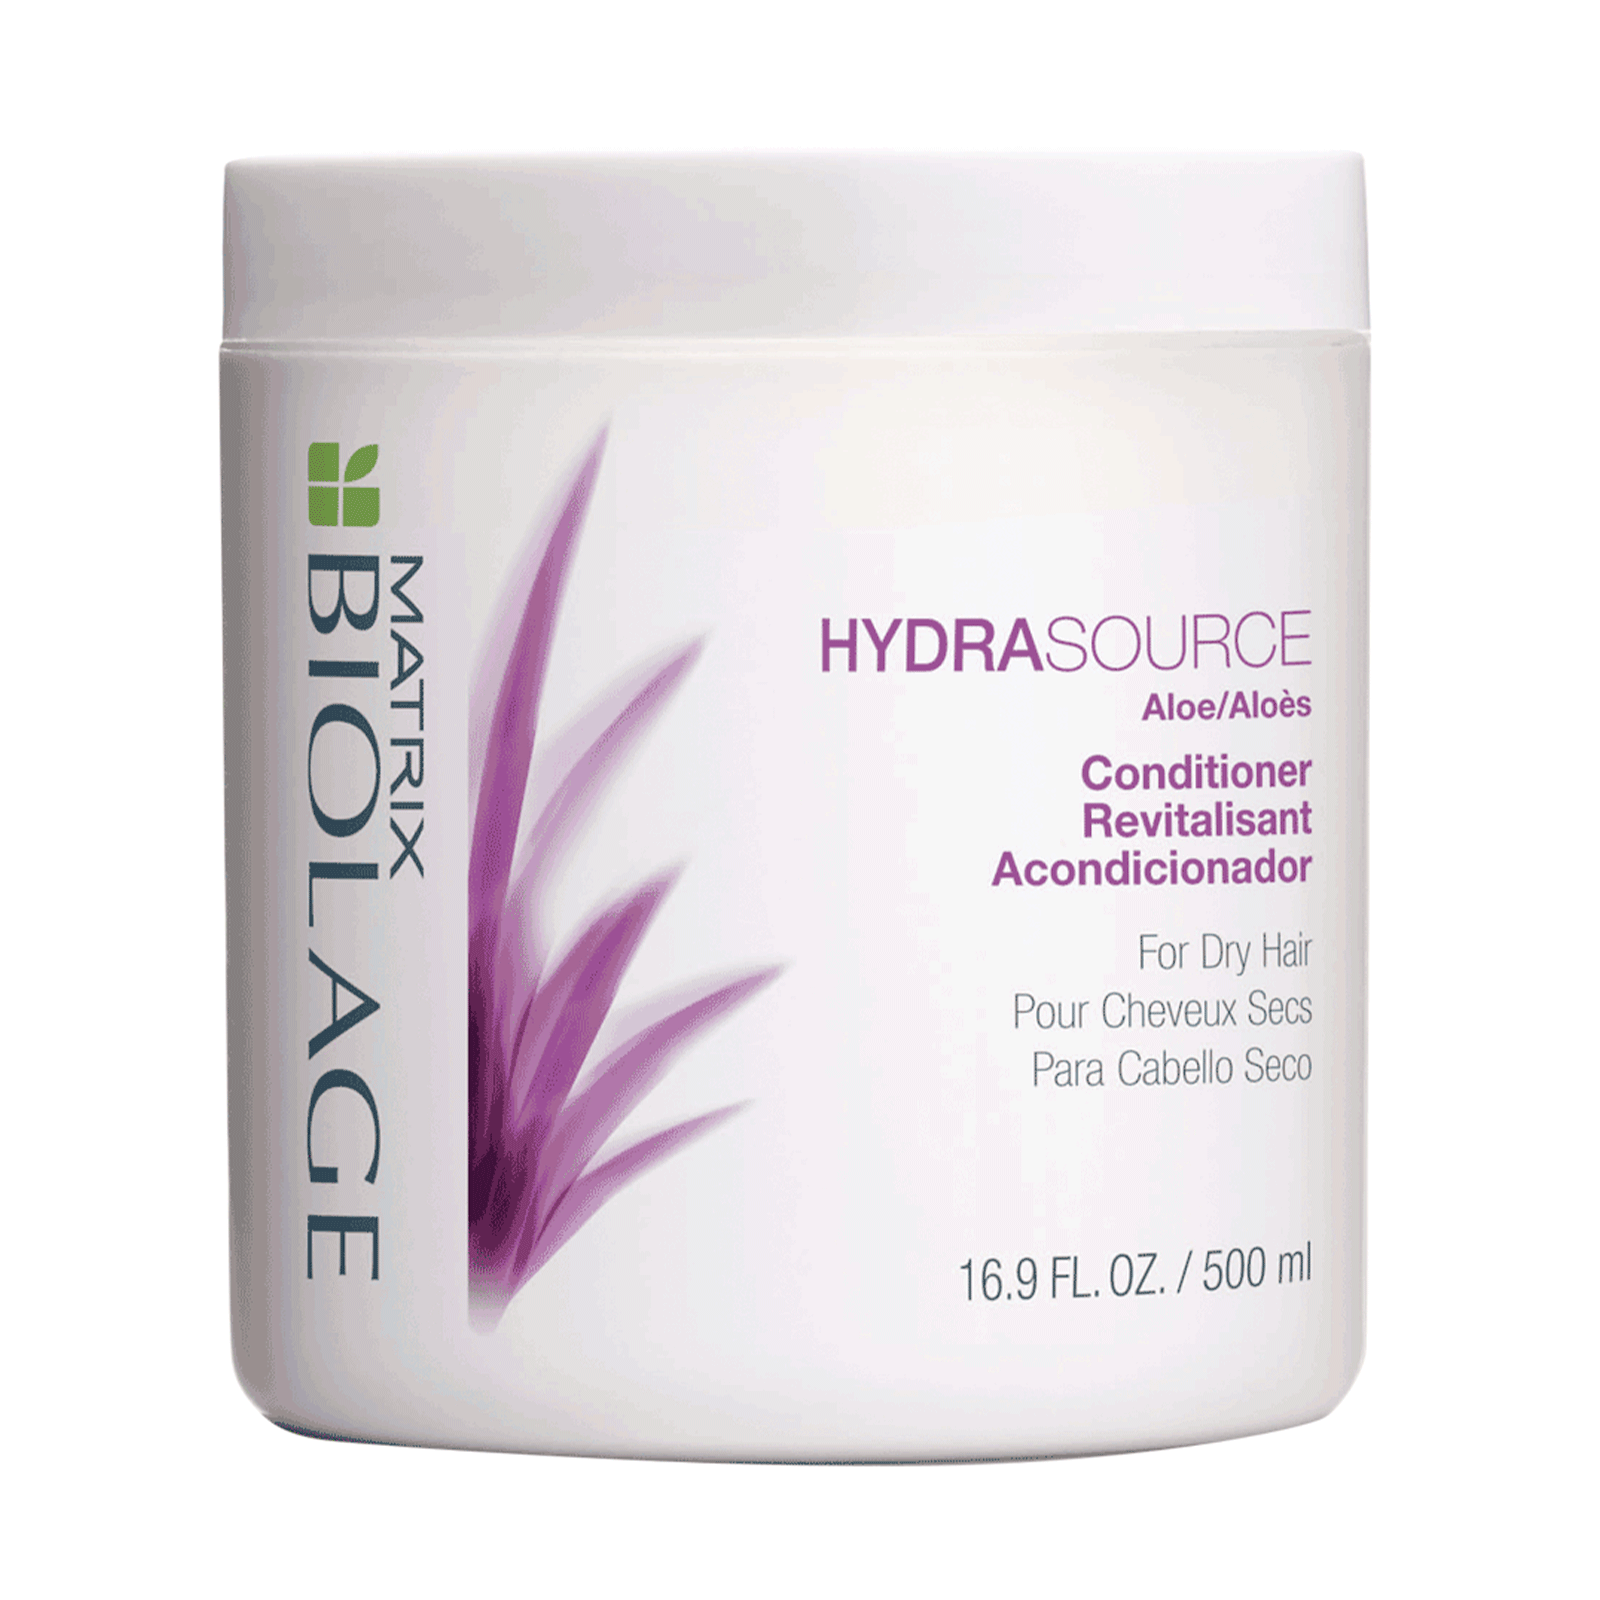 HydraSource Conditioning Balm